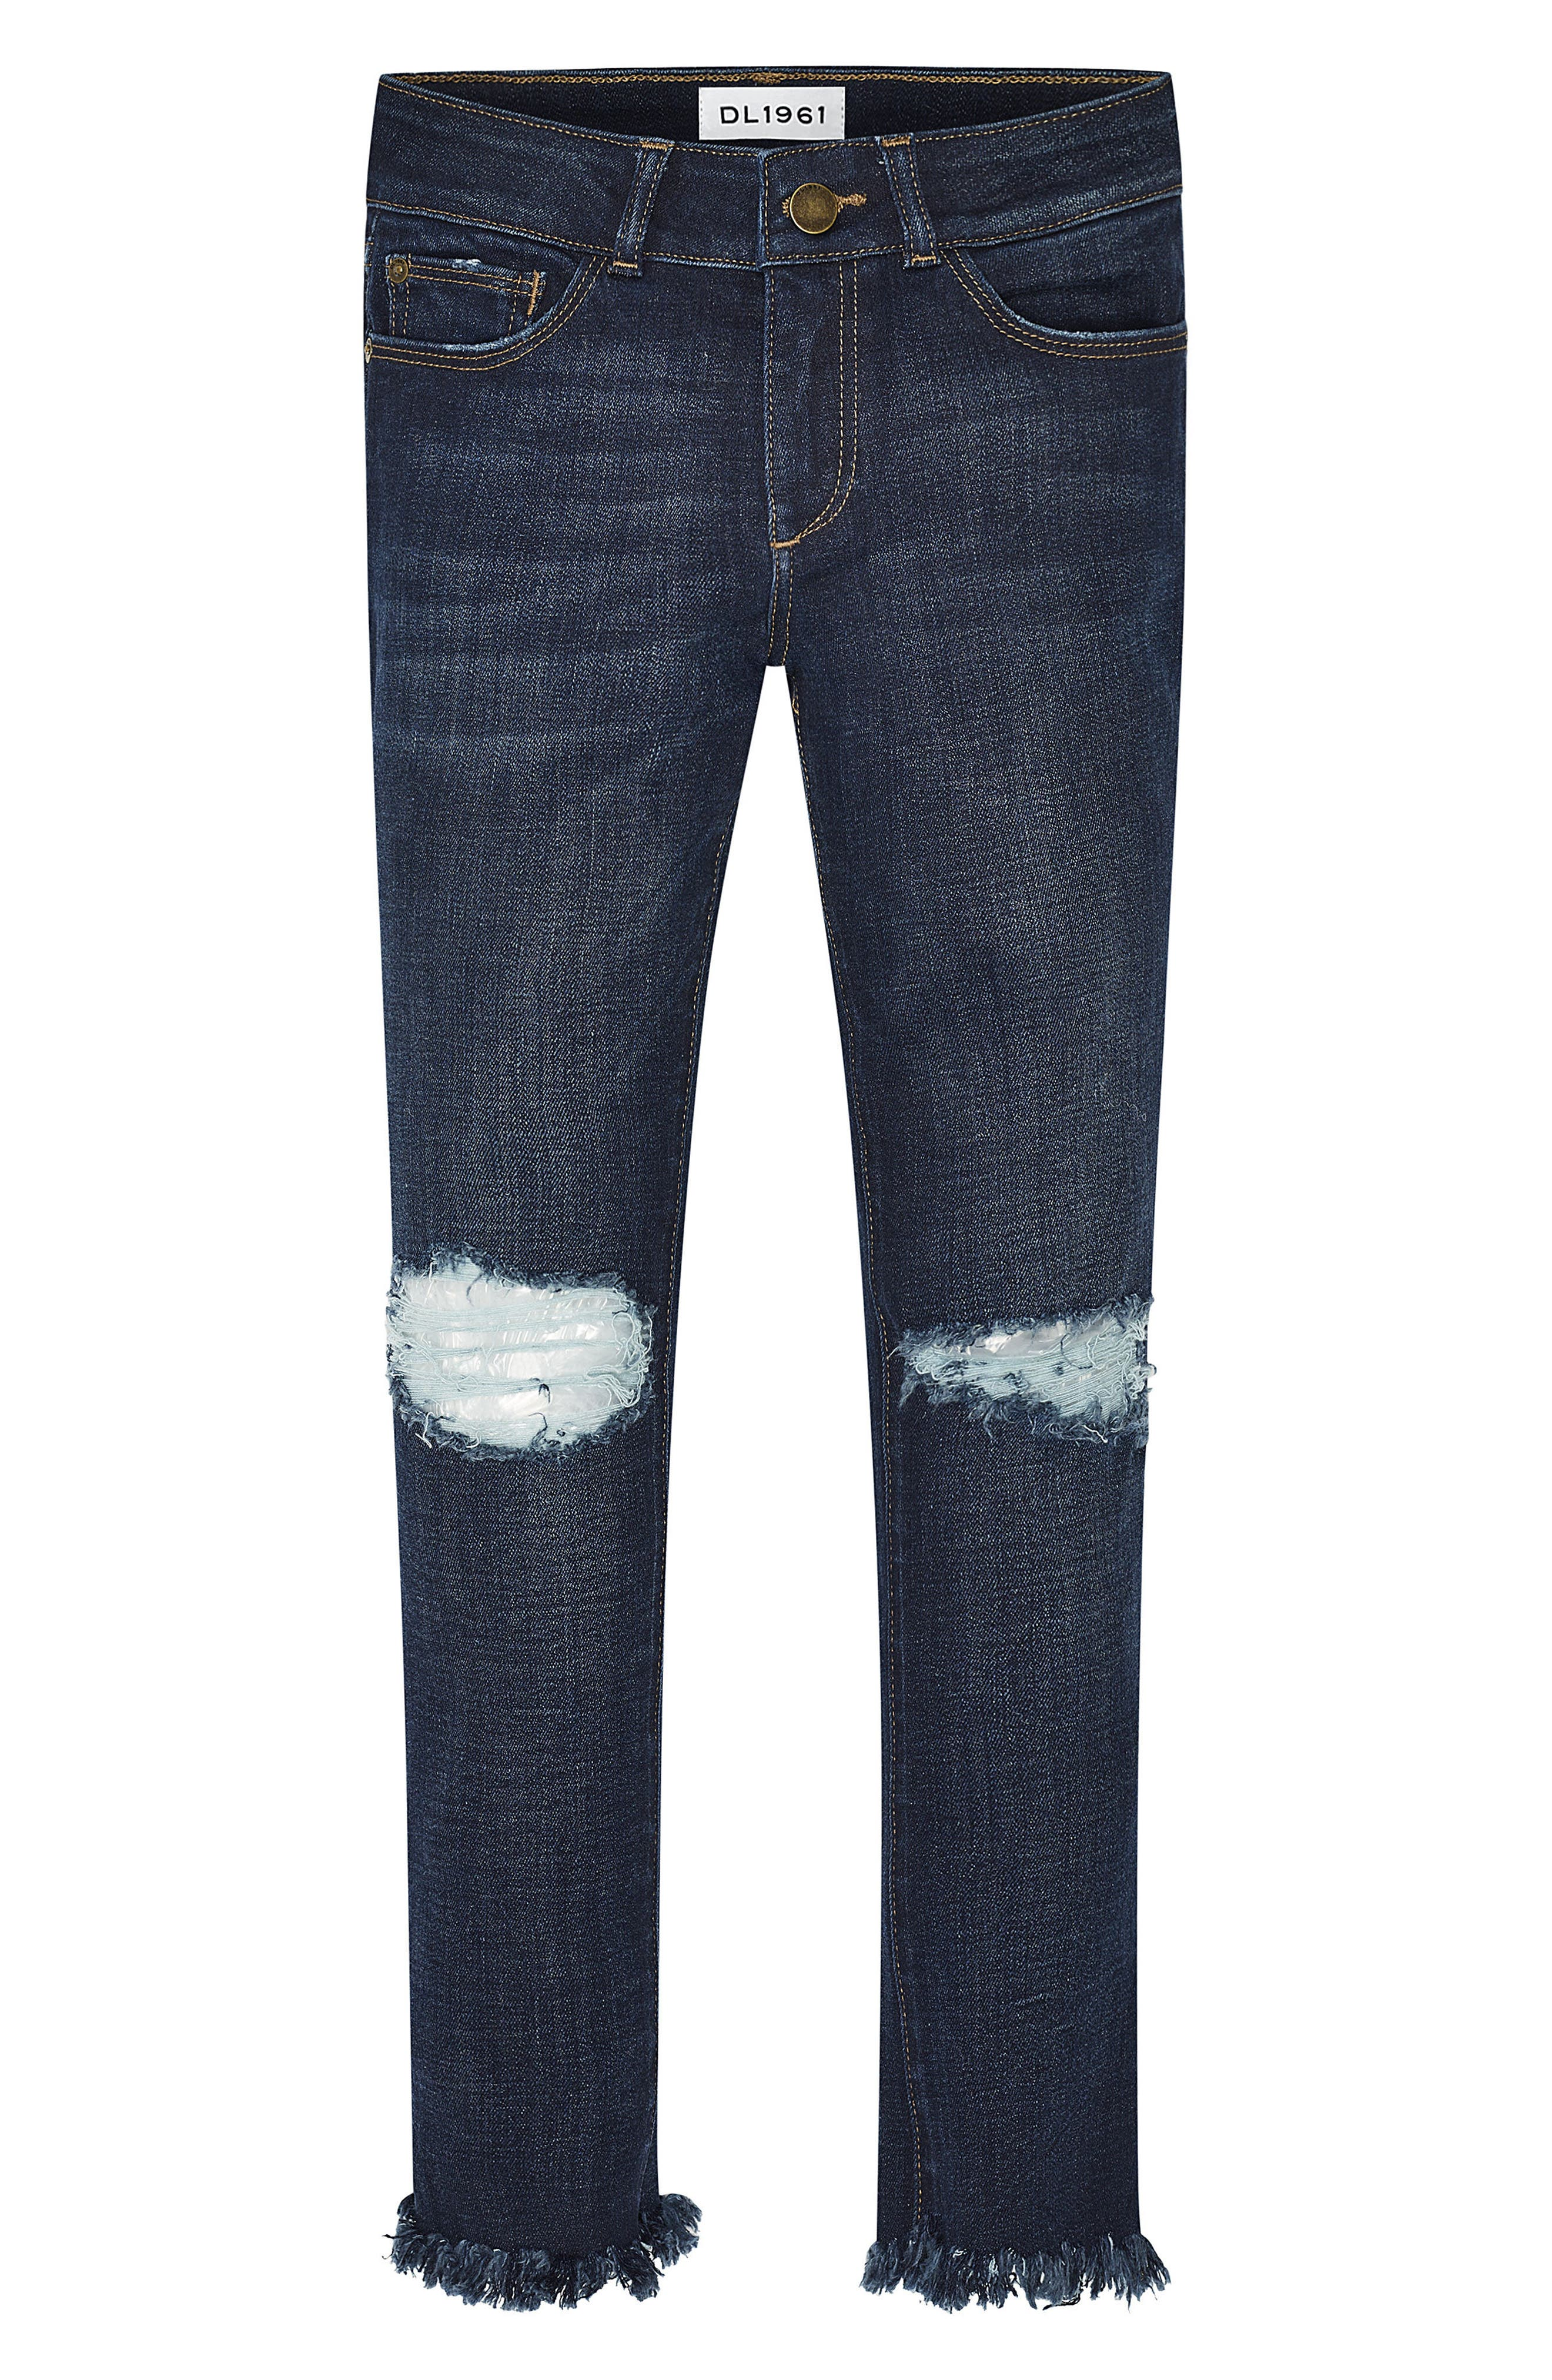 DL1916 Chloe Distressed Skinny Jeans,                             Main thumbnail 1, color,                             Willow